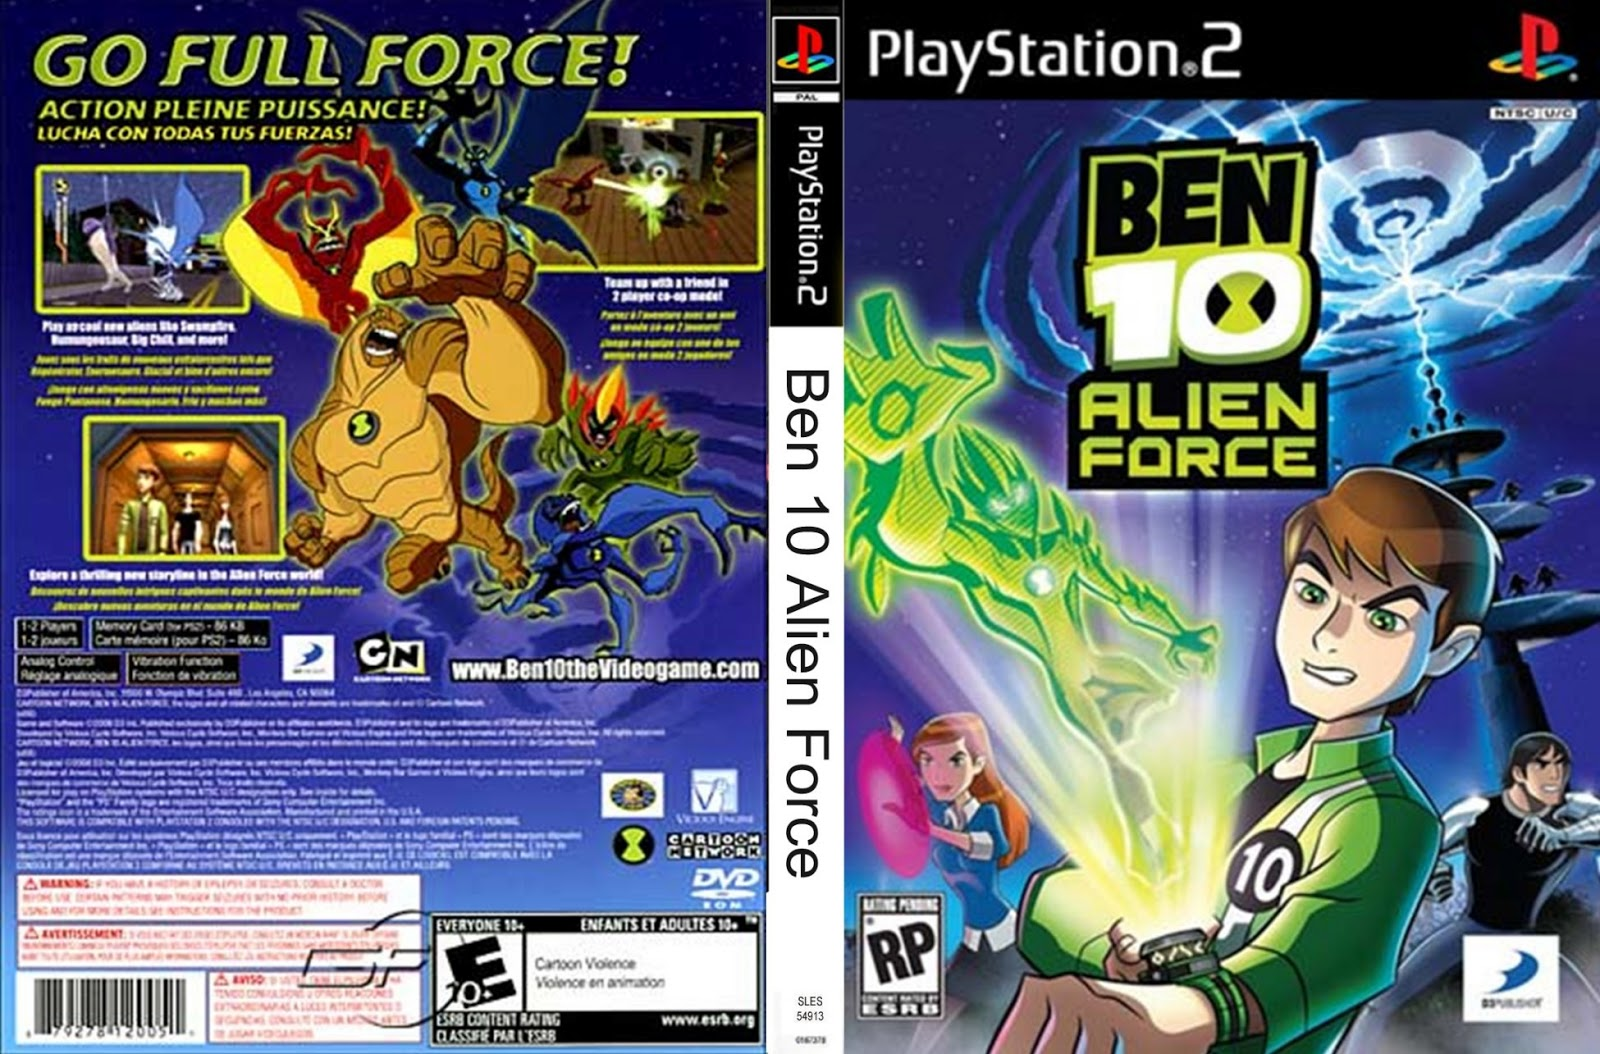 Download Game Ps2 Ben 10 (Alien Force) ISO Psx free